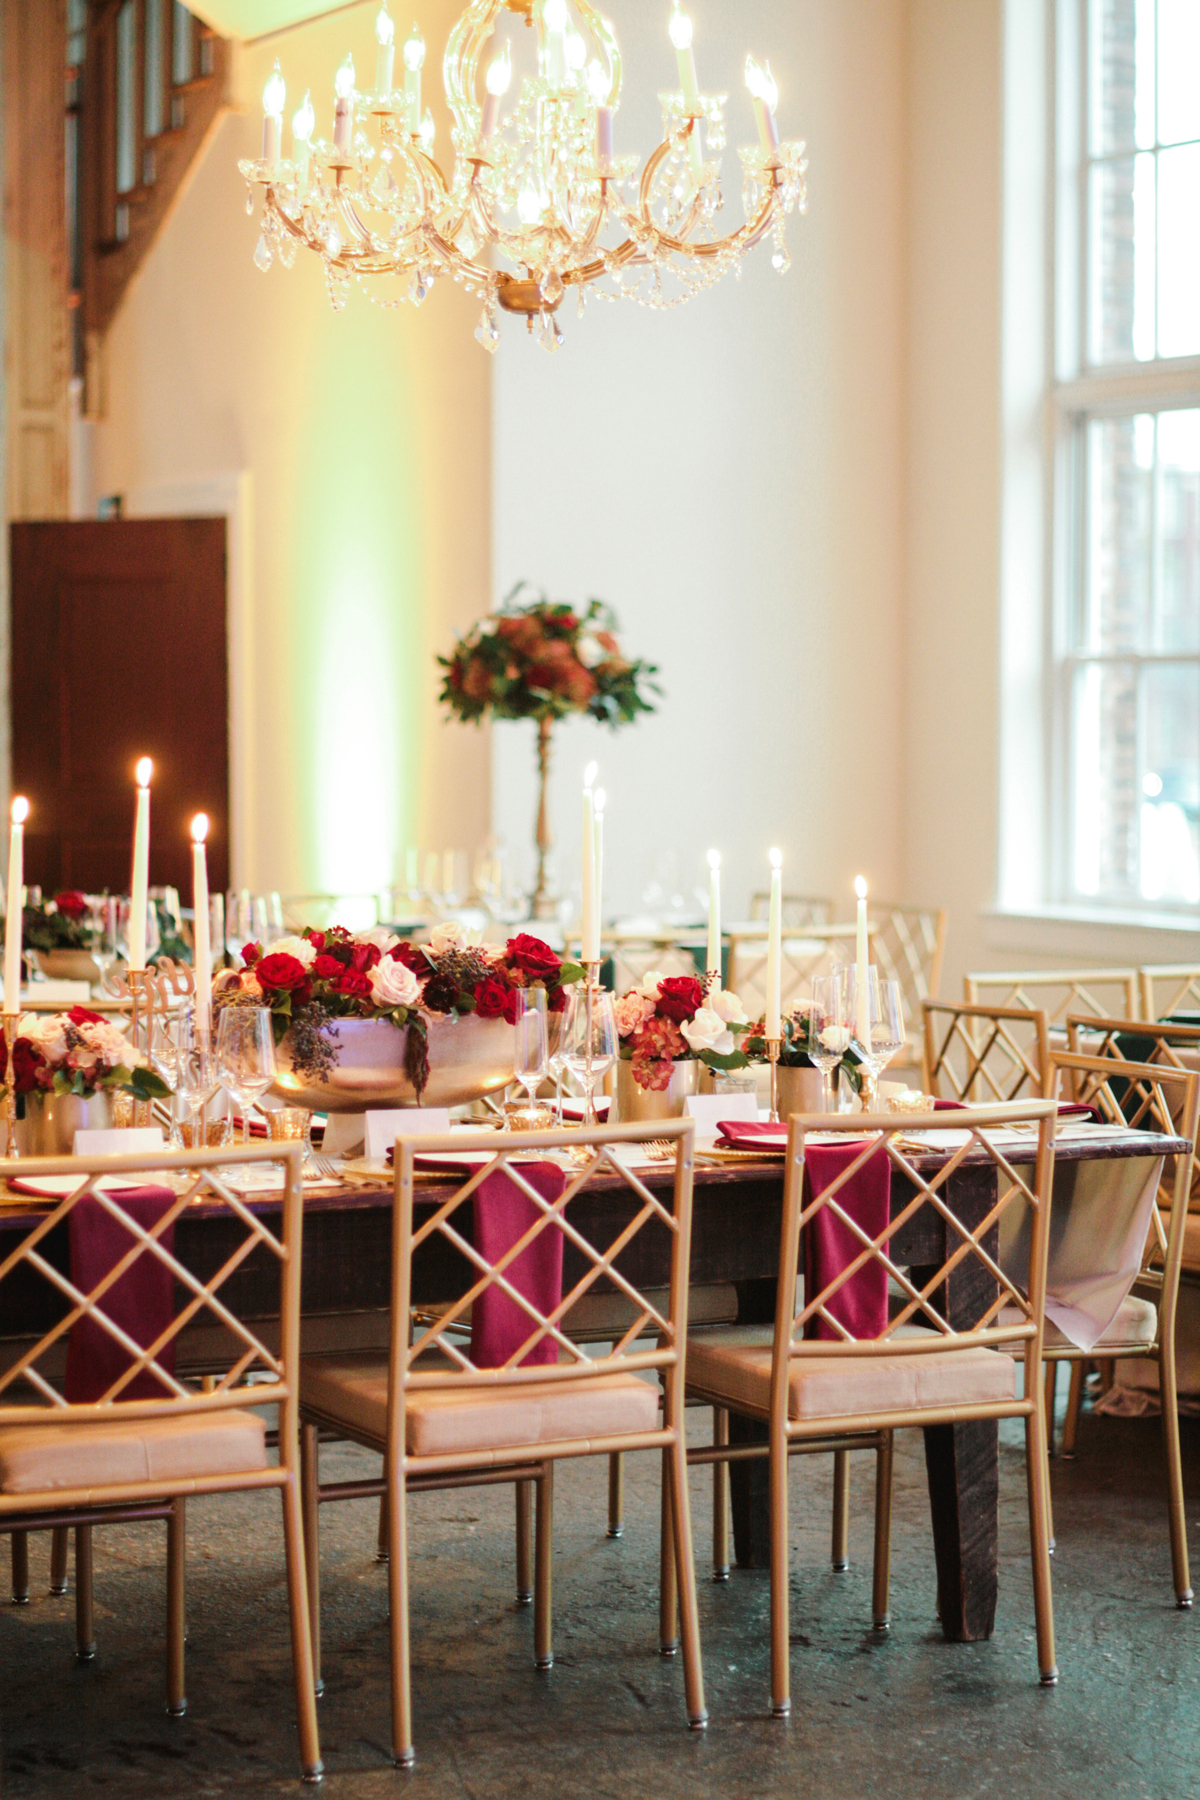 A Rustic-Chic Reception